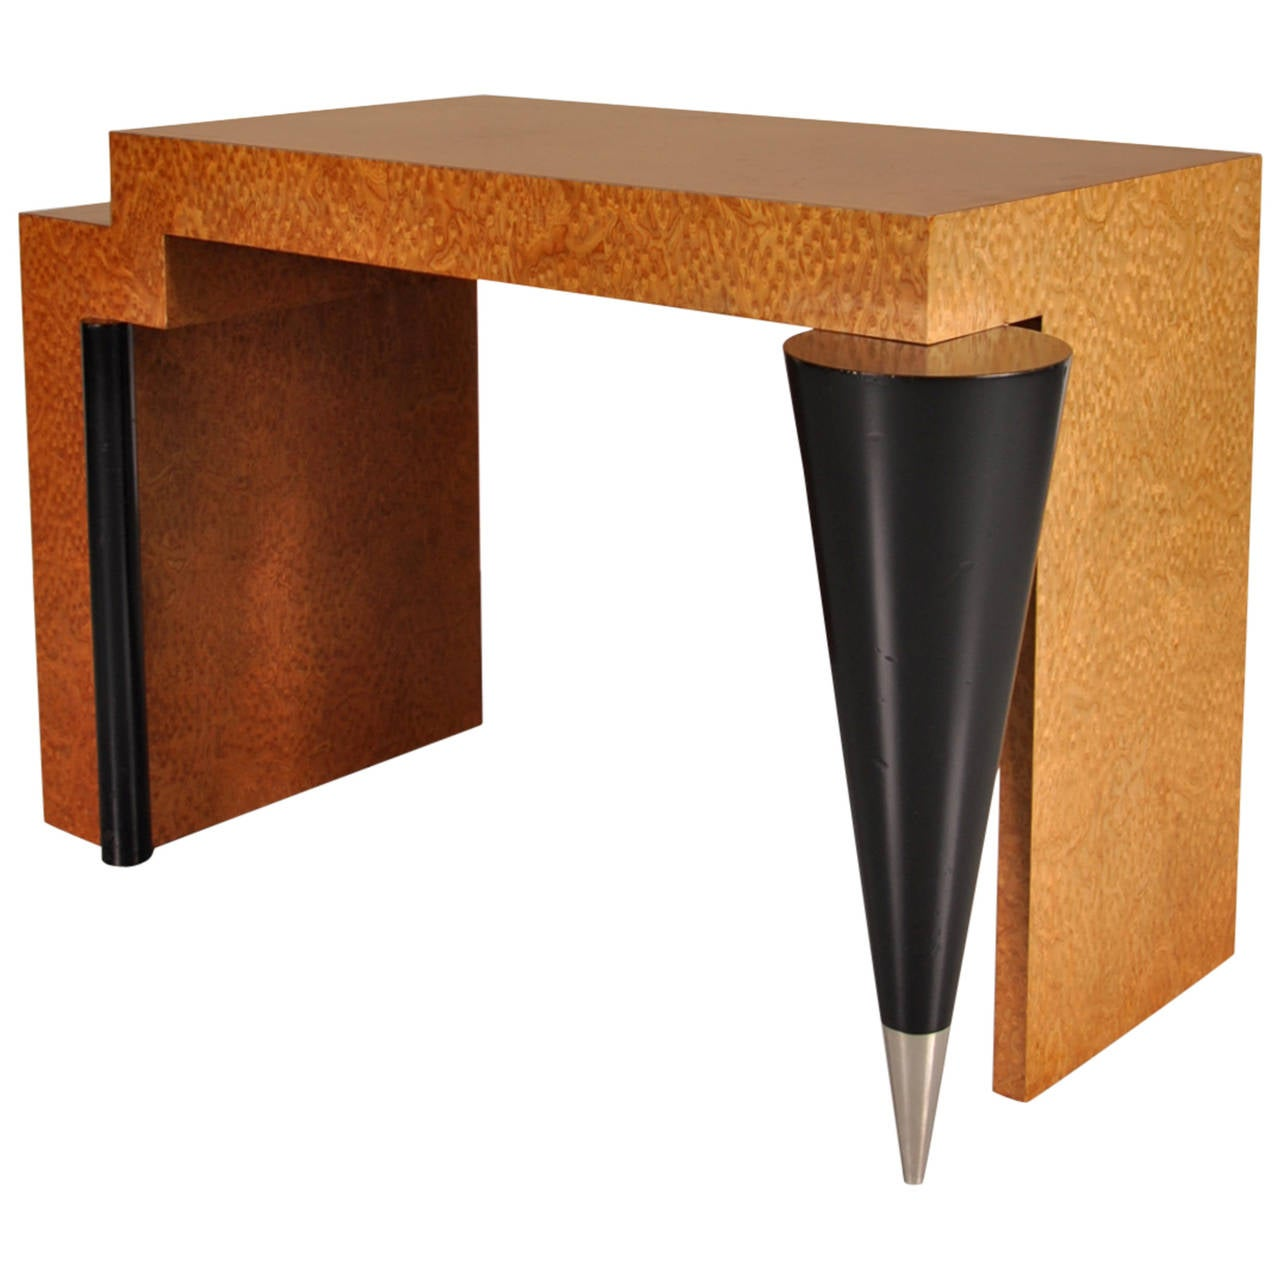 Memphis Style Desk Or Console Table, Circa 1980 For Sale